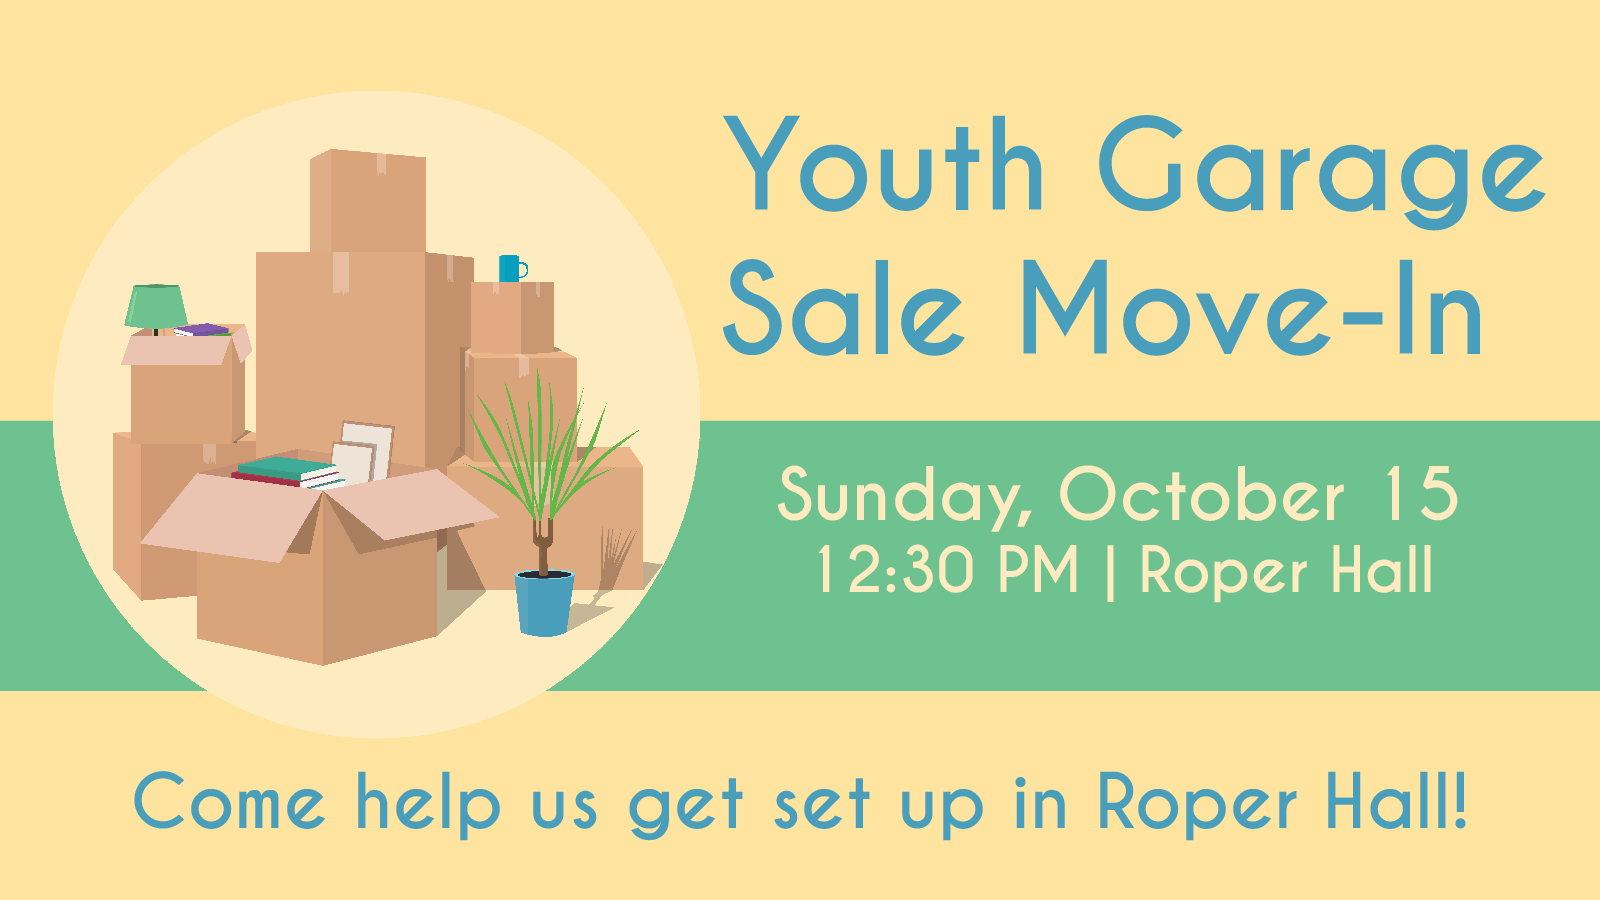 Youth Garage Sale Move-In – Episcopal Church of the Transfiguration